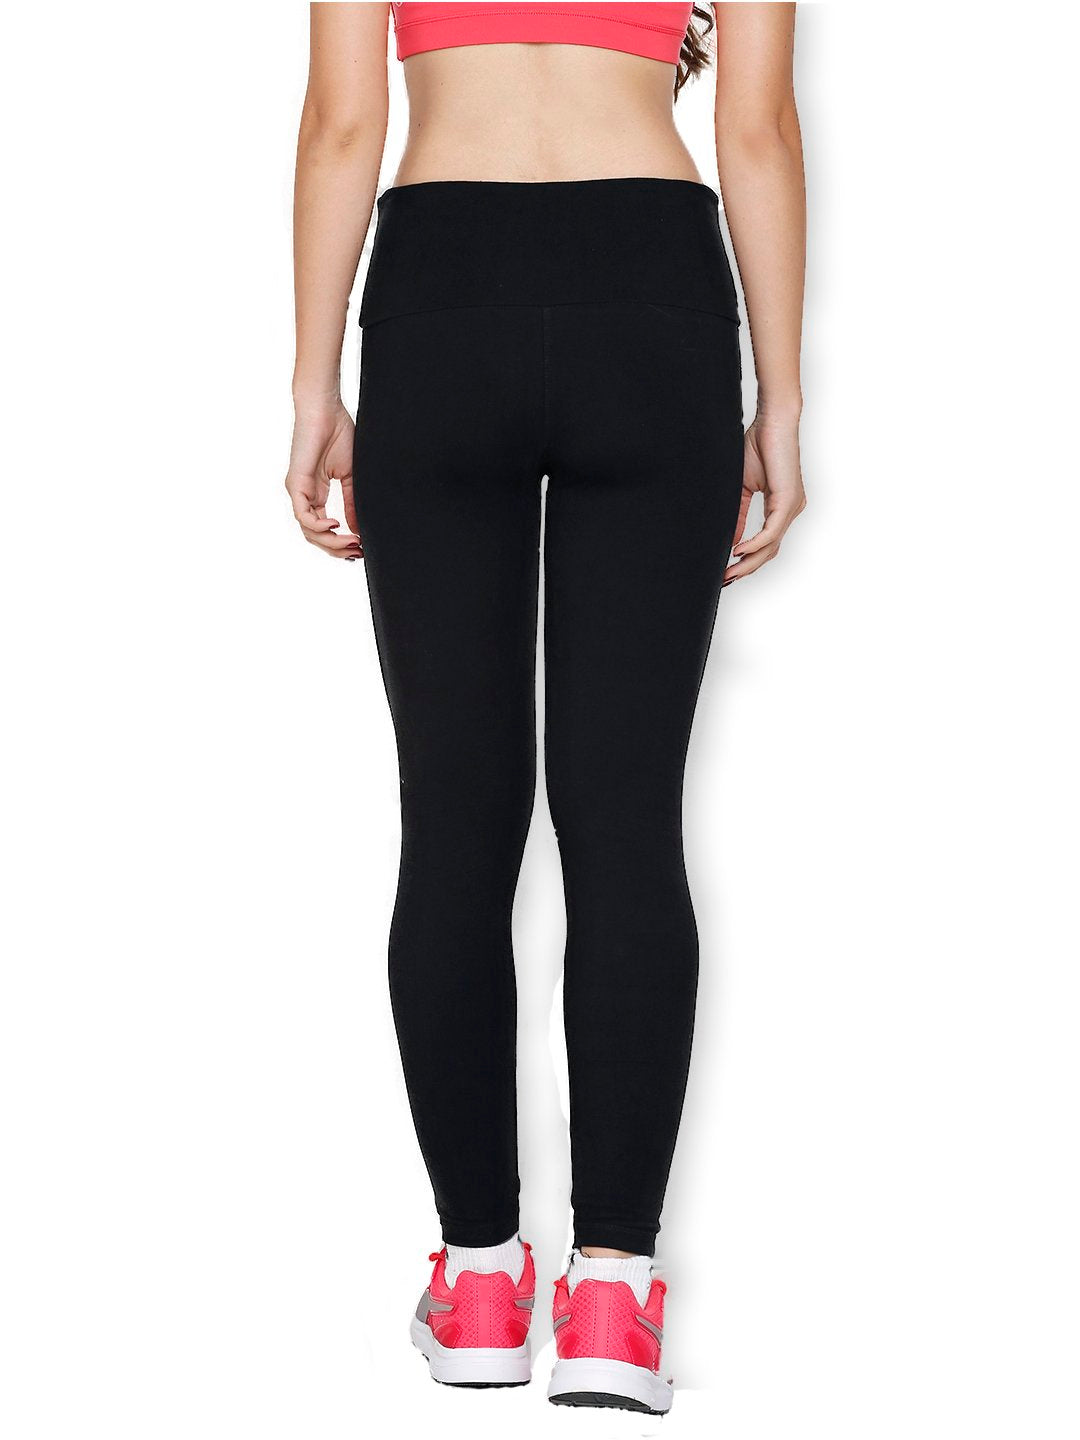 Women's Bamboo Ankle-Length Leggings - Slate Black